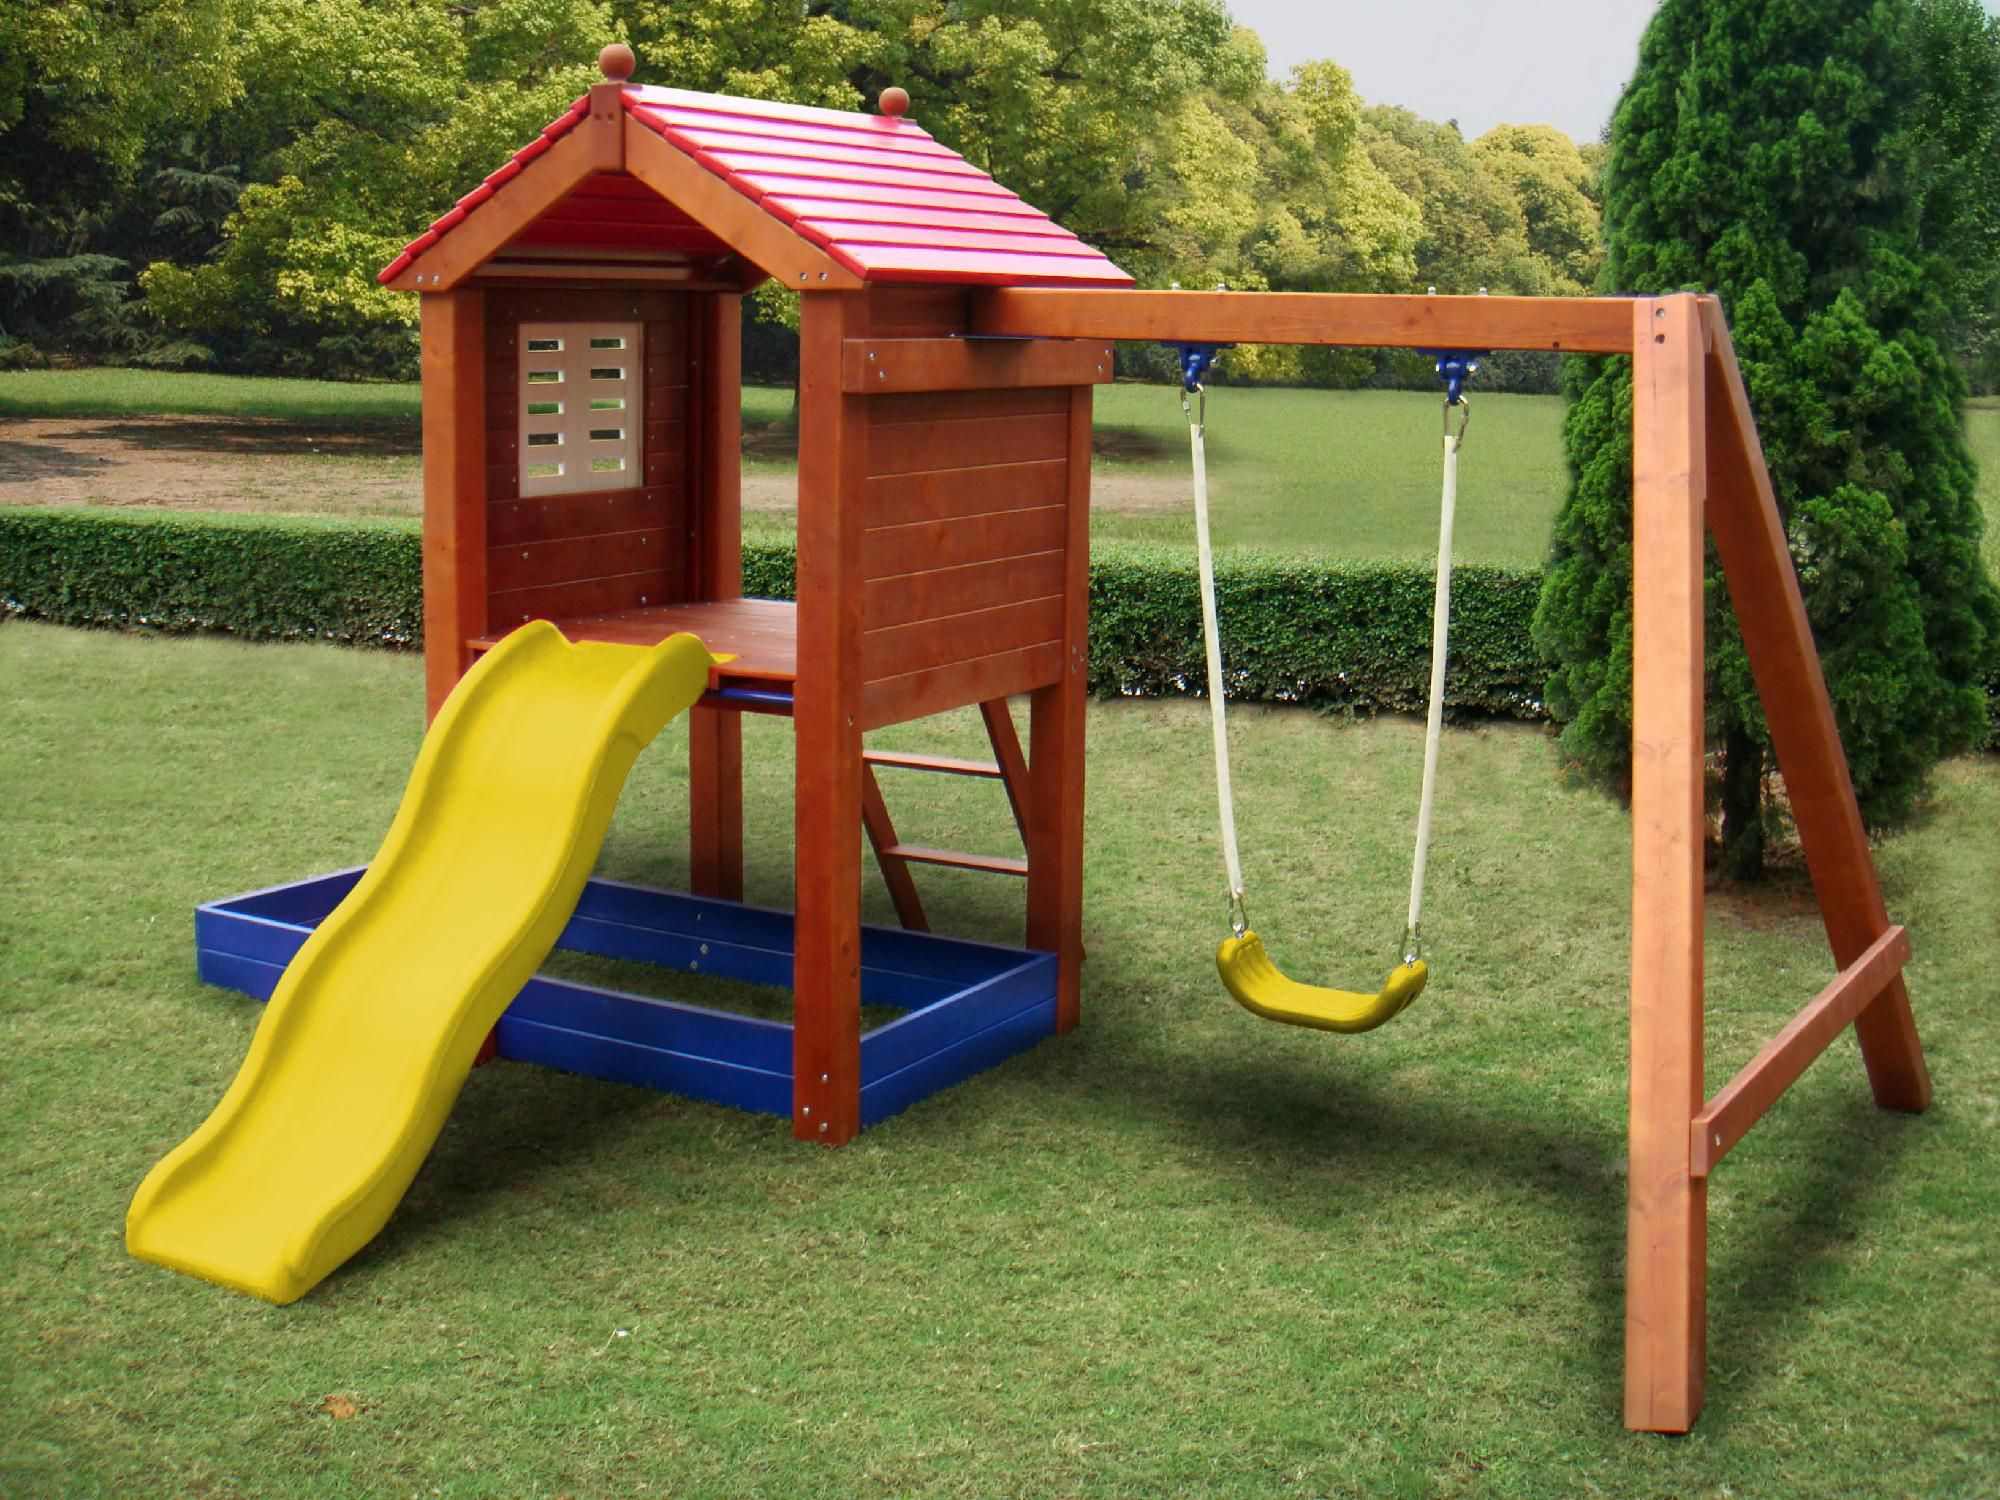 The Sand N Swing Combines The Fun Of A Swing Set With The Excitement